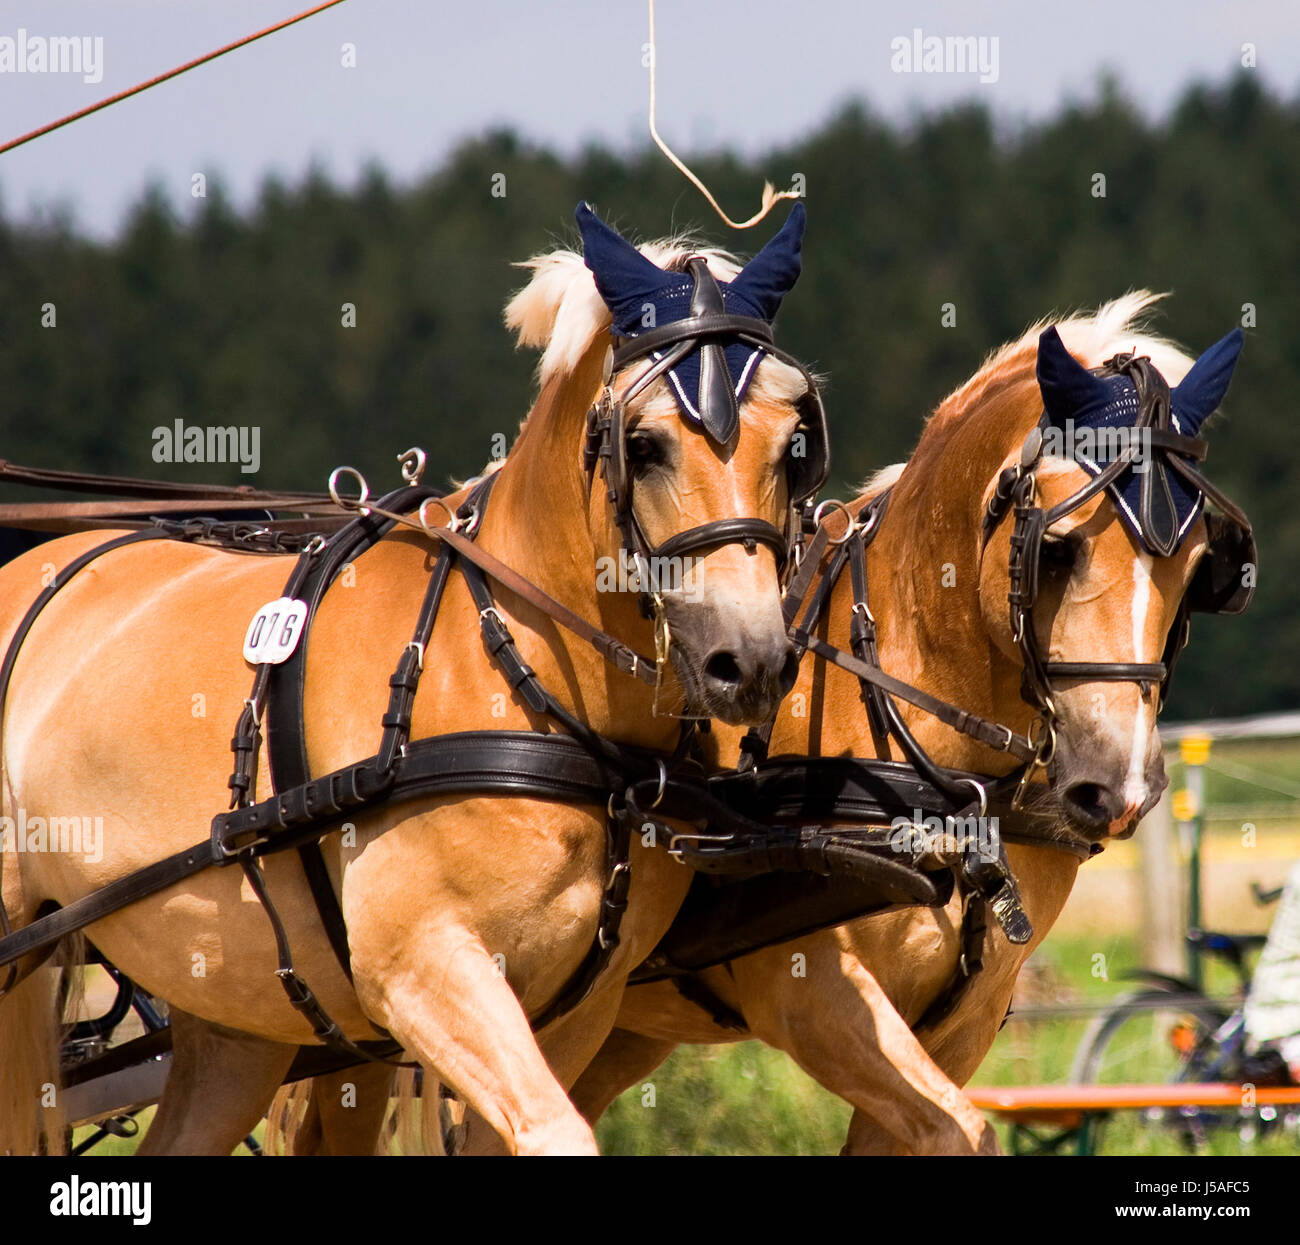 horse summer summerly horses harness riding haflinger horse whip snaffle - Stock Image